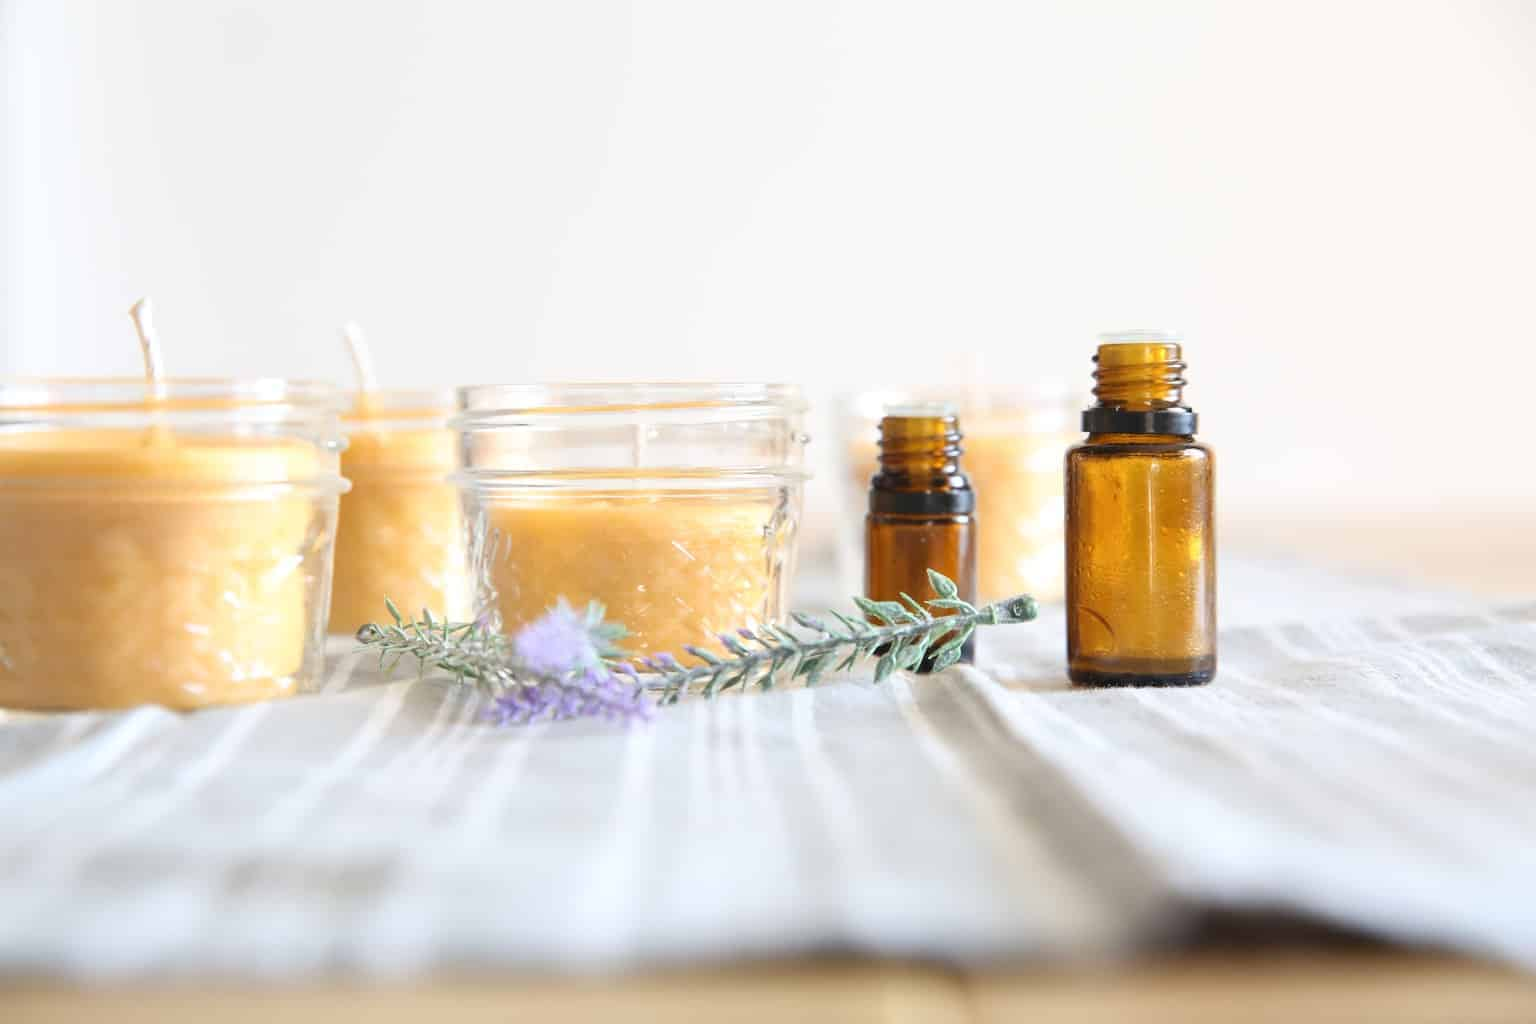 Homemade essential oil scented beeswax candle recipe and simple video tutorial.